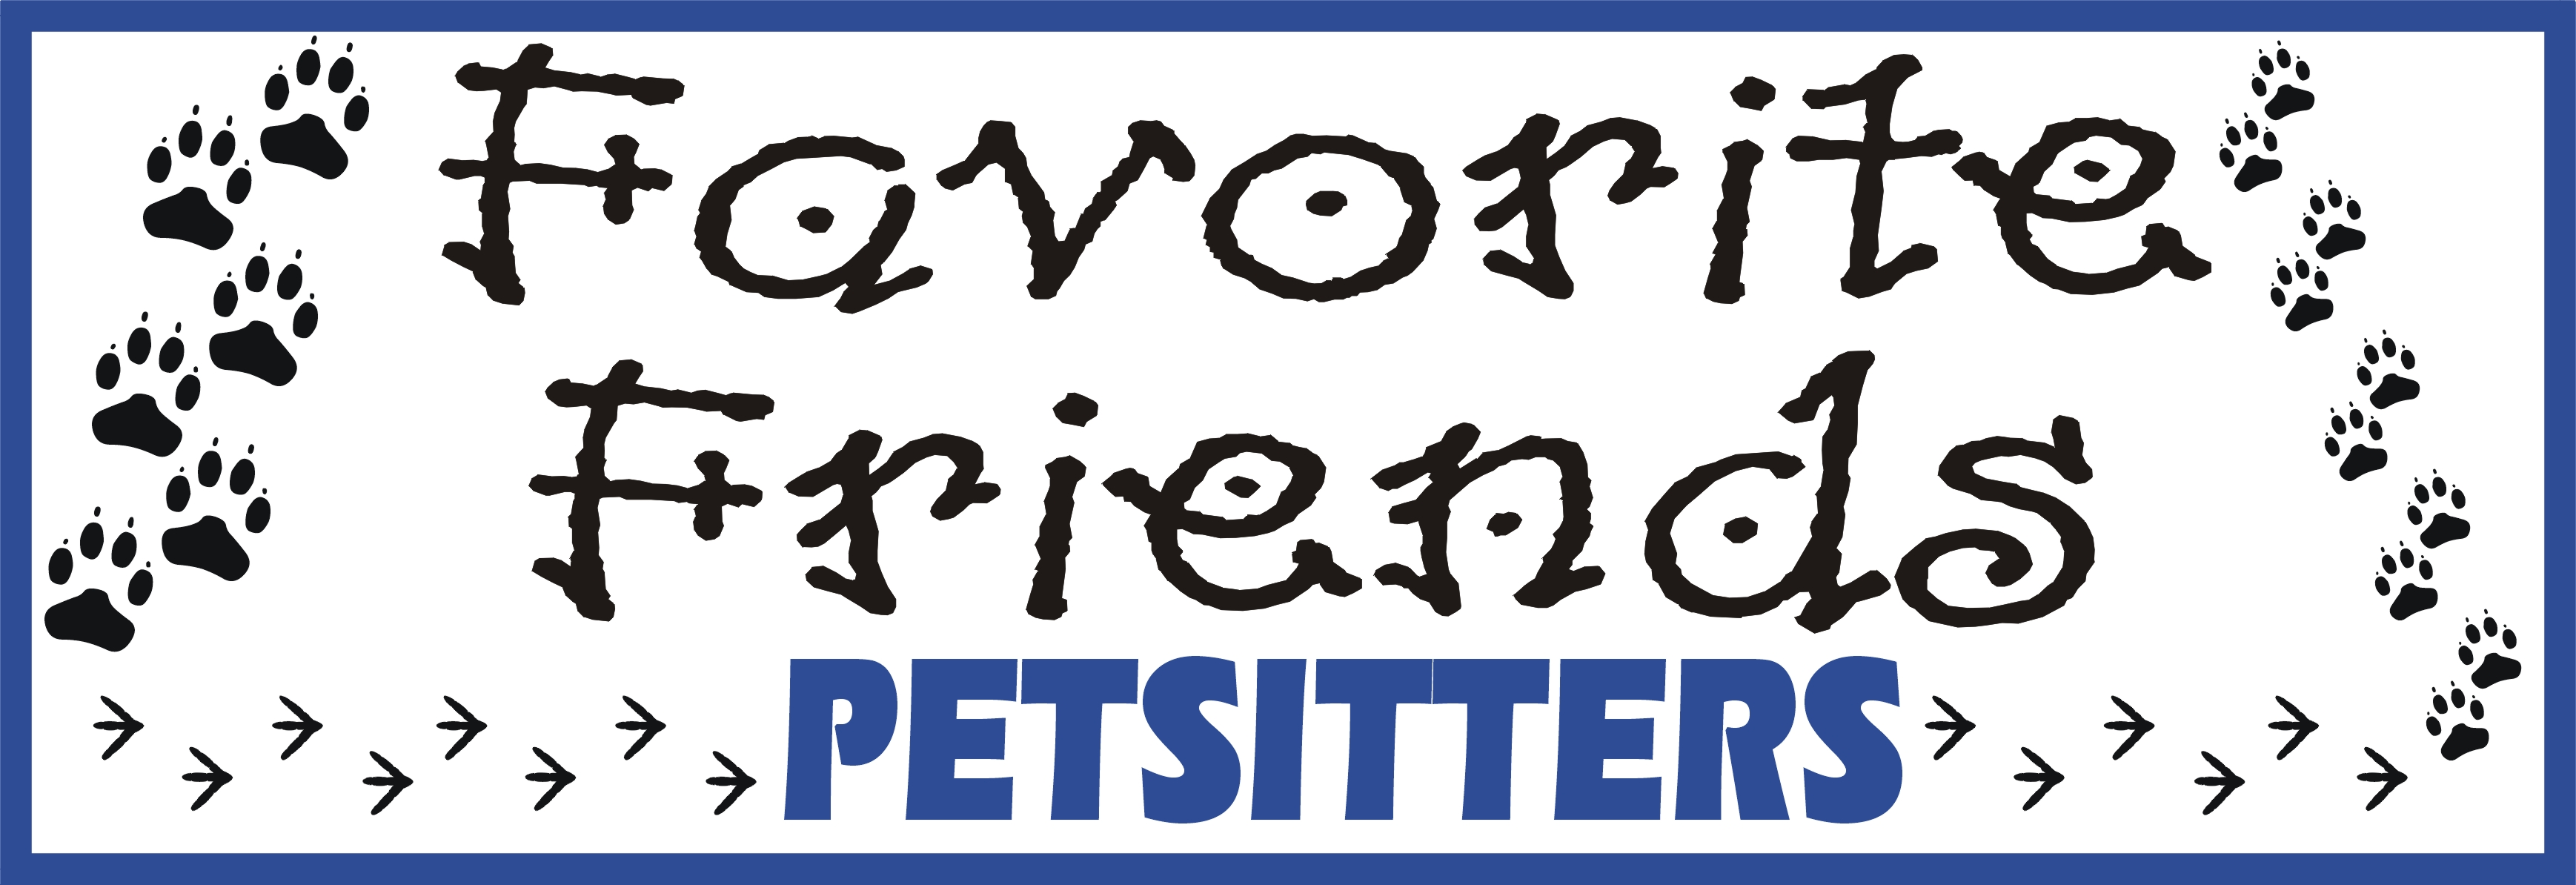 Favorite Friends PetSitters